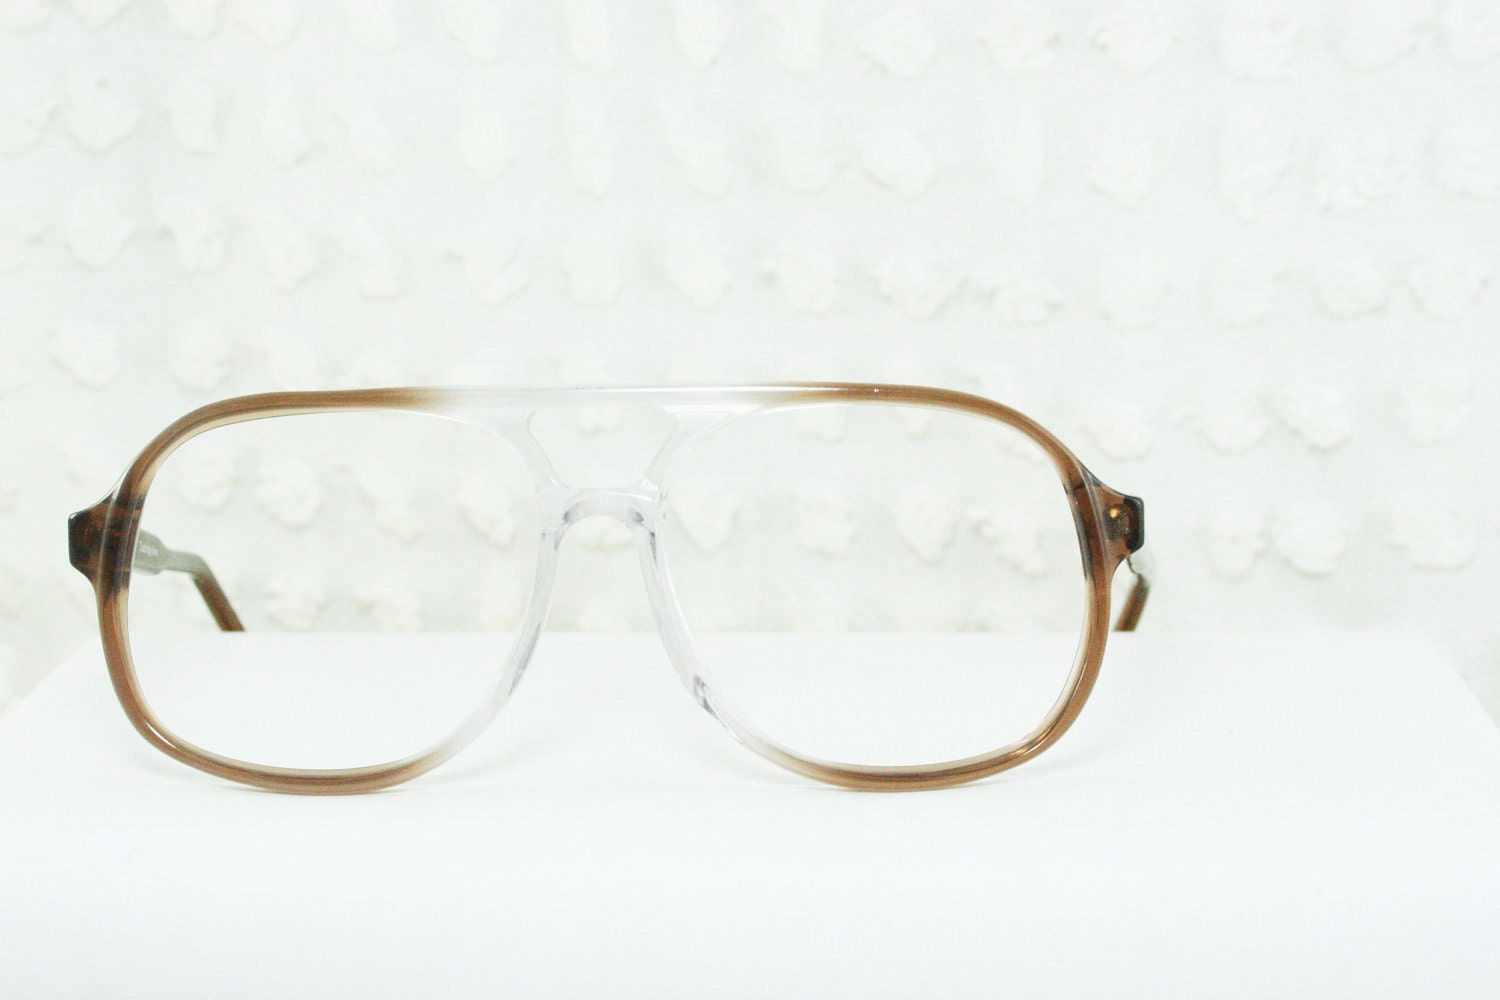 1980 s aviator eyeglasses clear to brown fade by